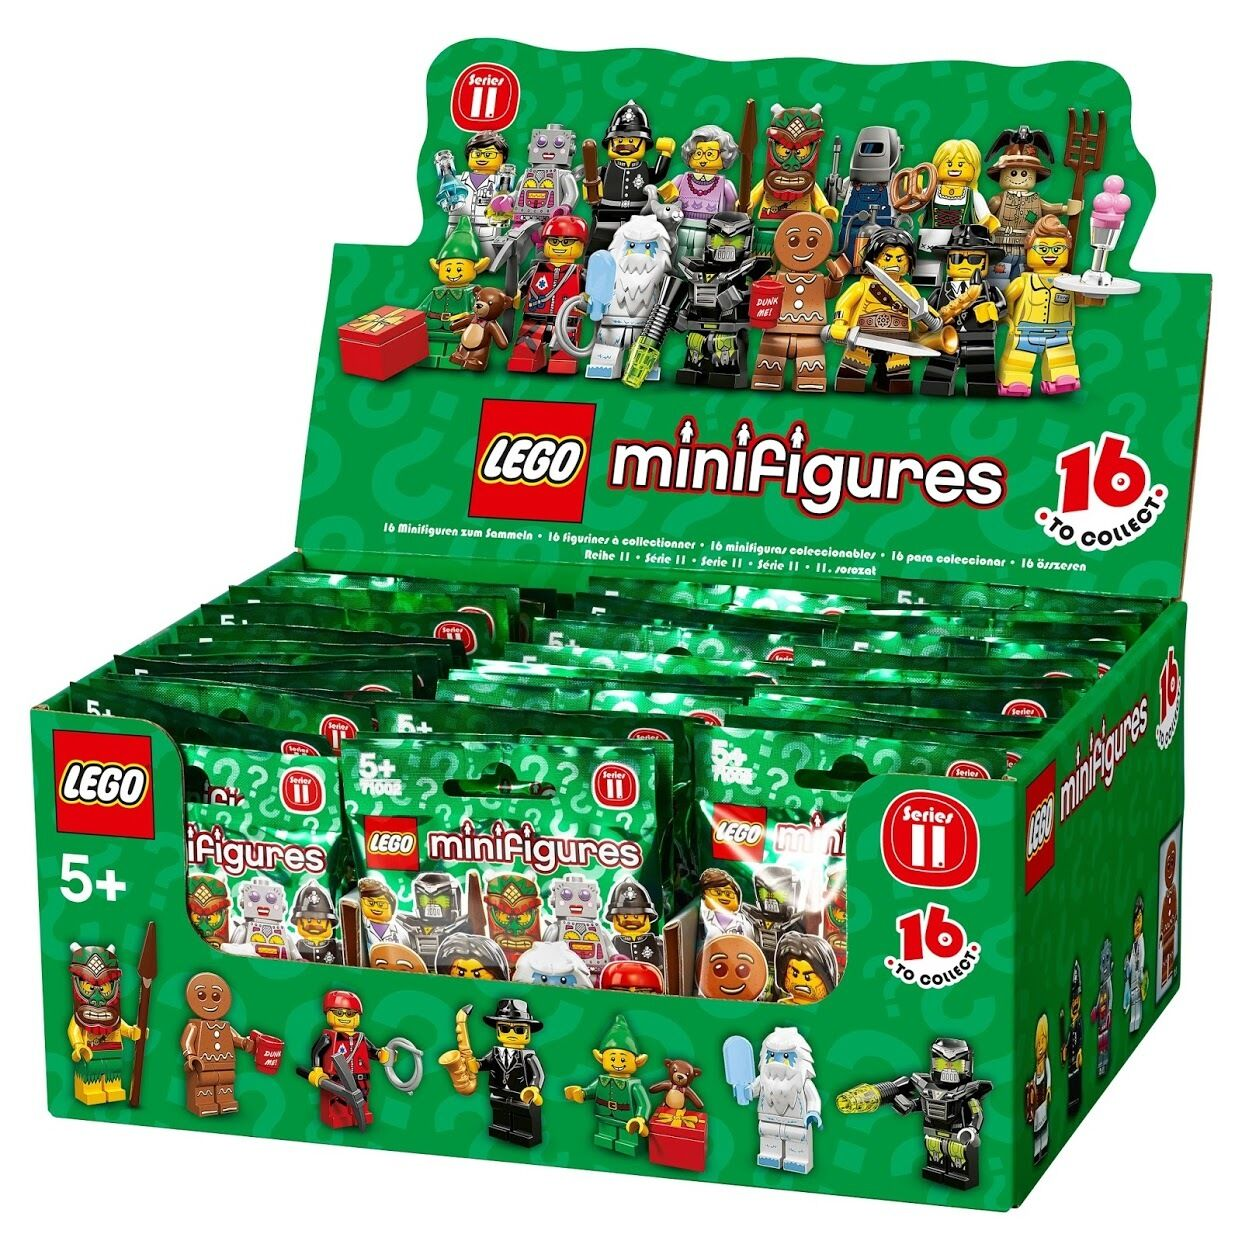 New Factory Sealed LEGO 71002 Box/Case of 60 Minifigures Series 11